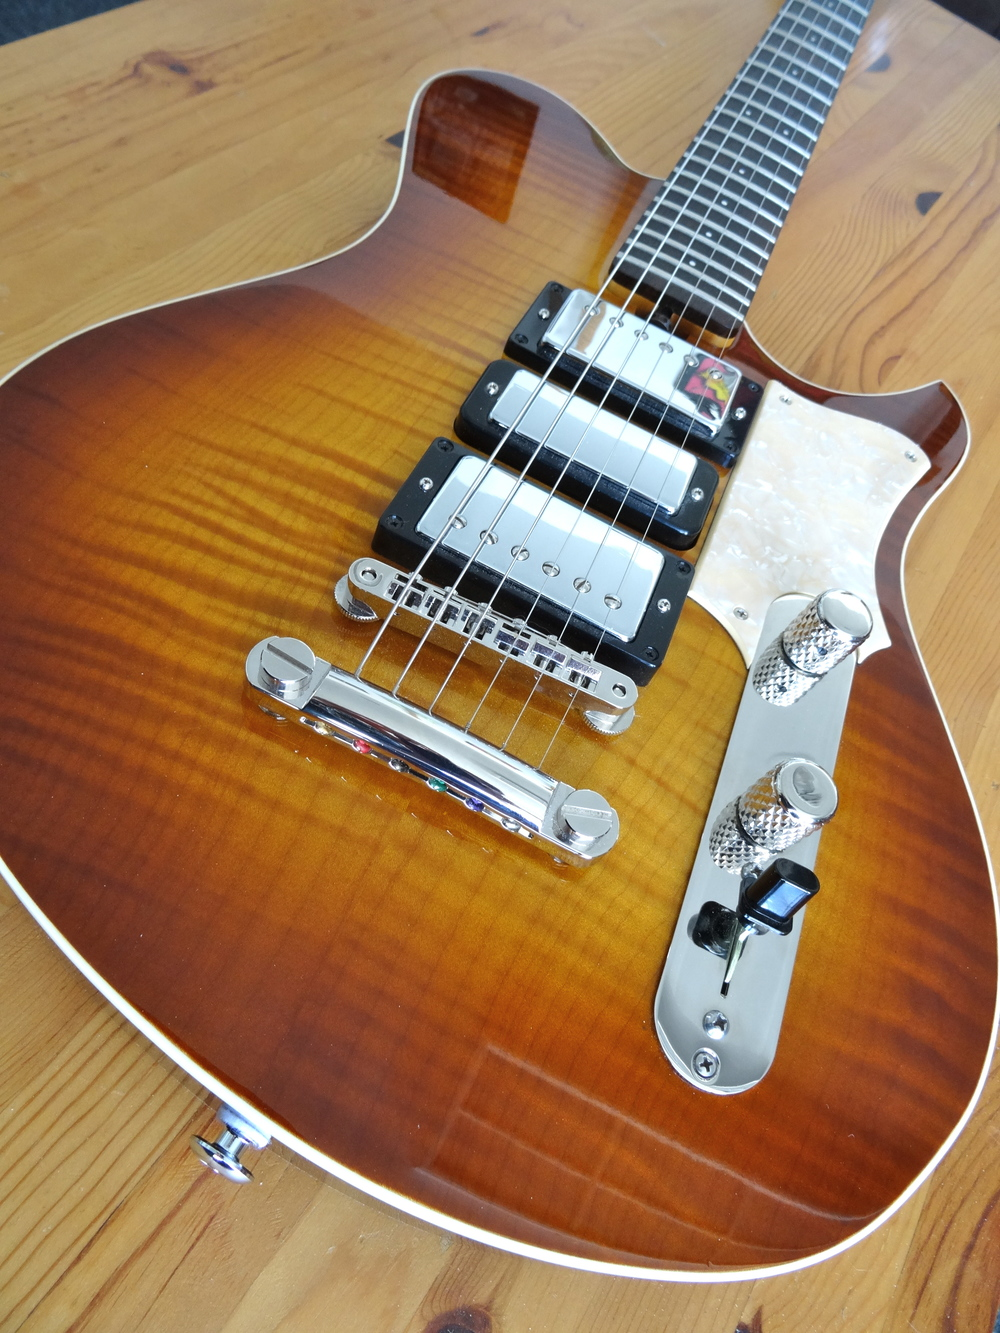 This guitar was commissioned by Wildriff Guitars